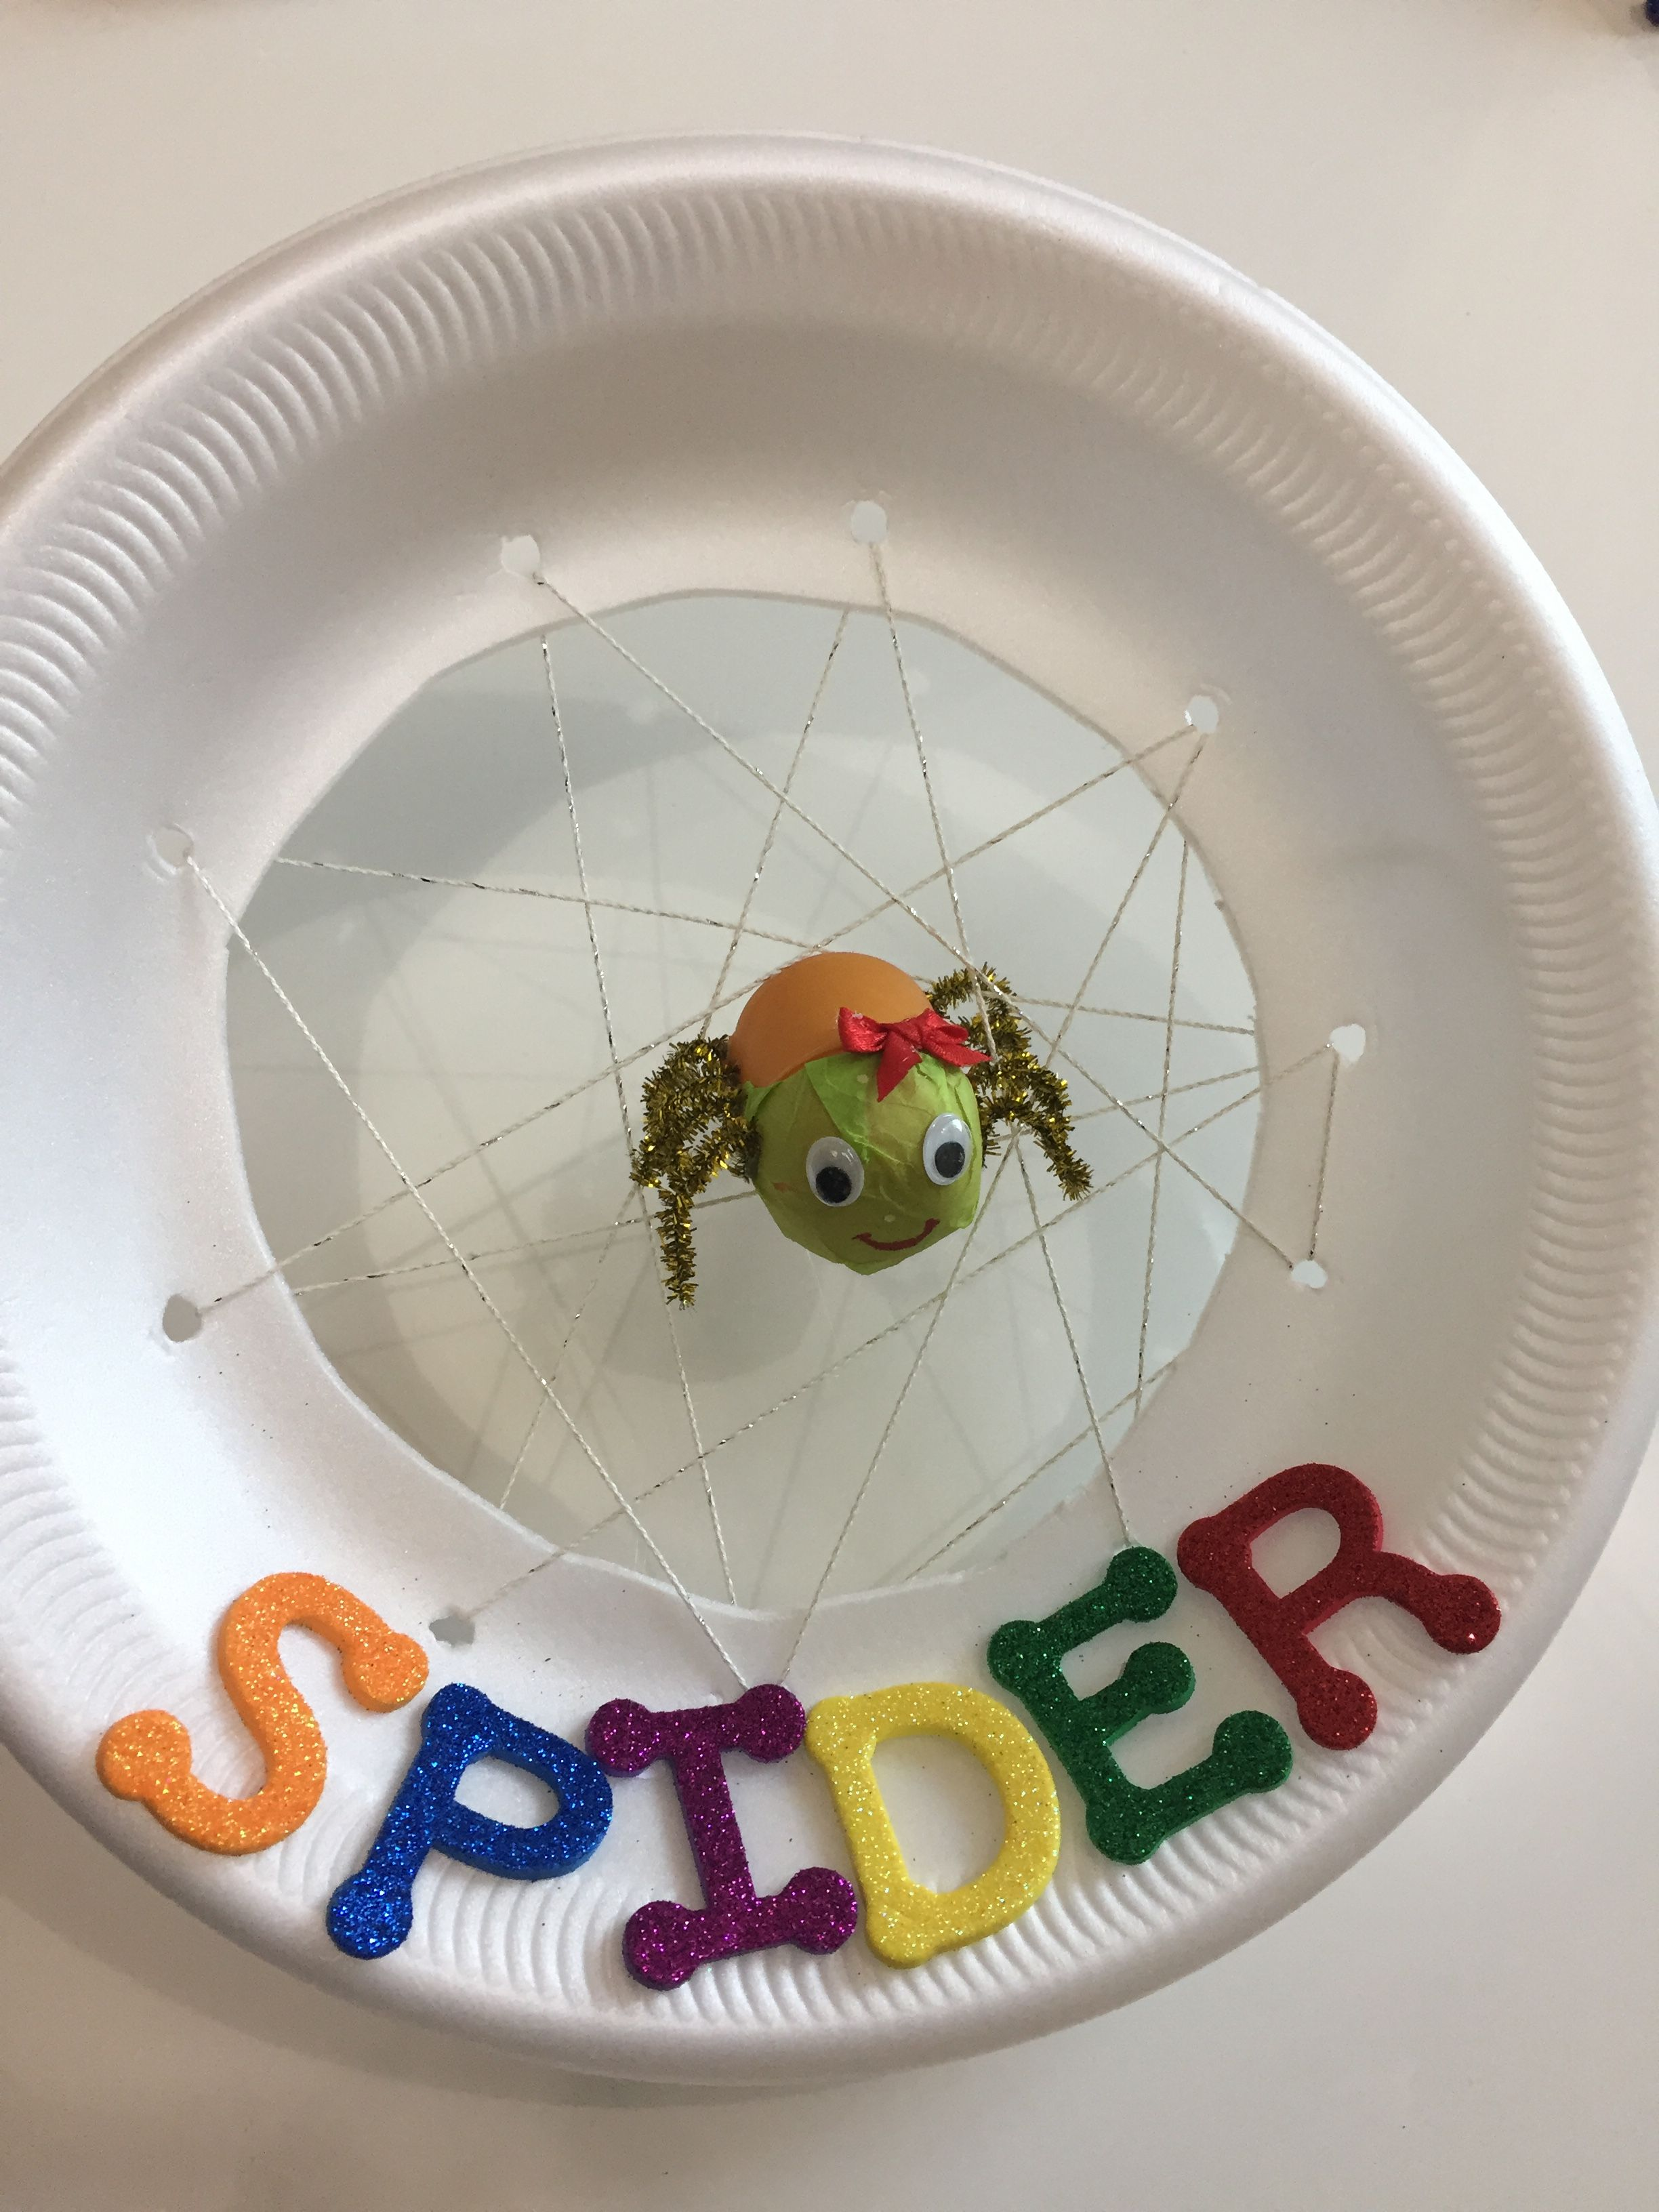 The Very Busy Spider By Eric Carle Kg Activities Projects